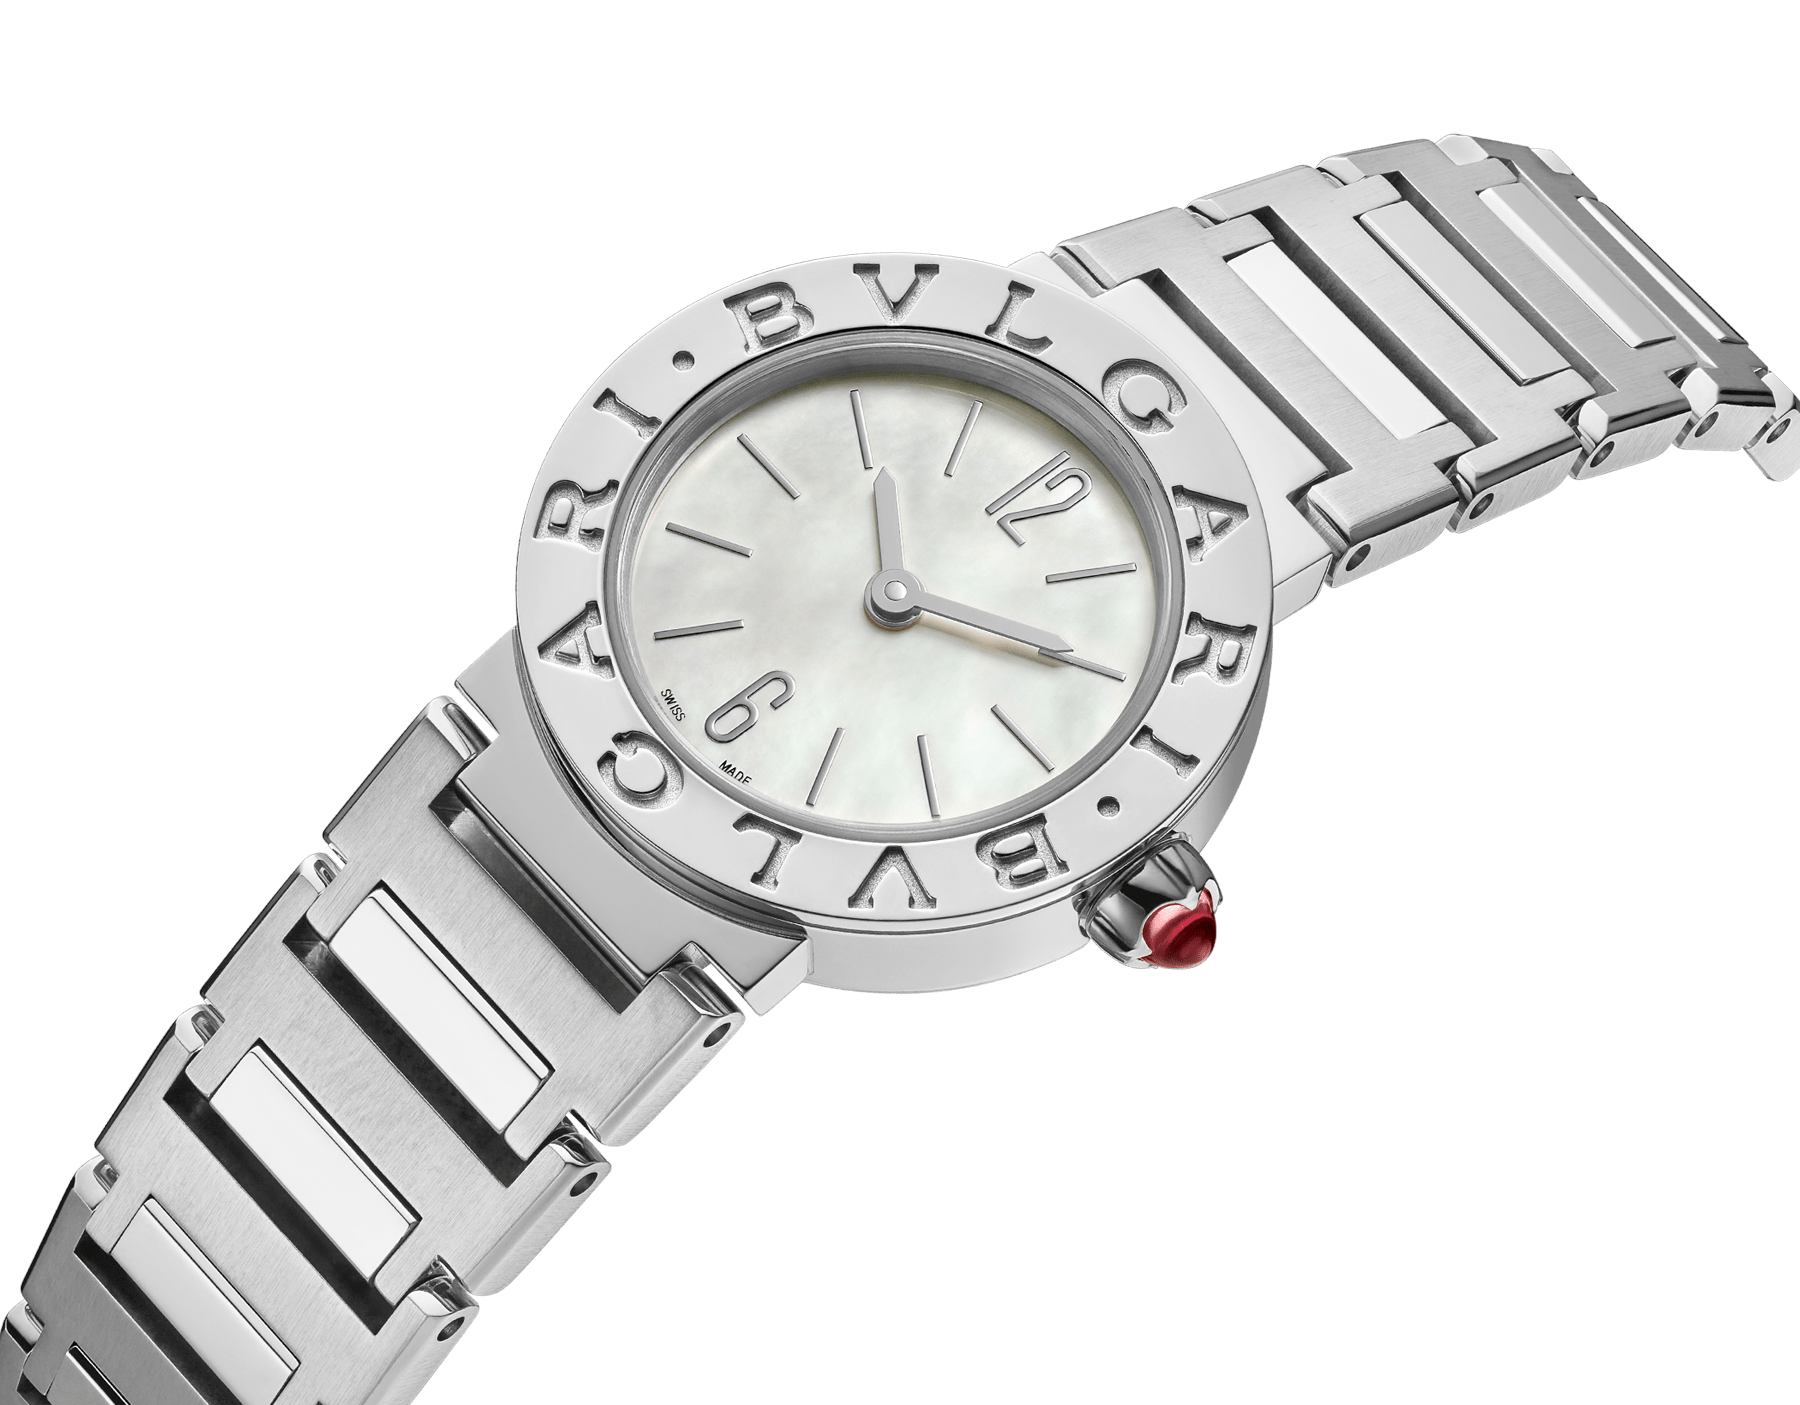 BVLGARI BVLGARI watch in stainless steel case and bracelet, stainless steel bezel engraved with double logo and mother-of-pearl dial 103217 image 2